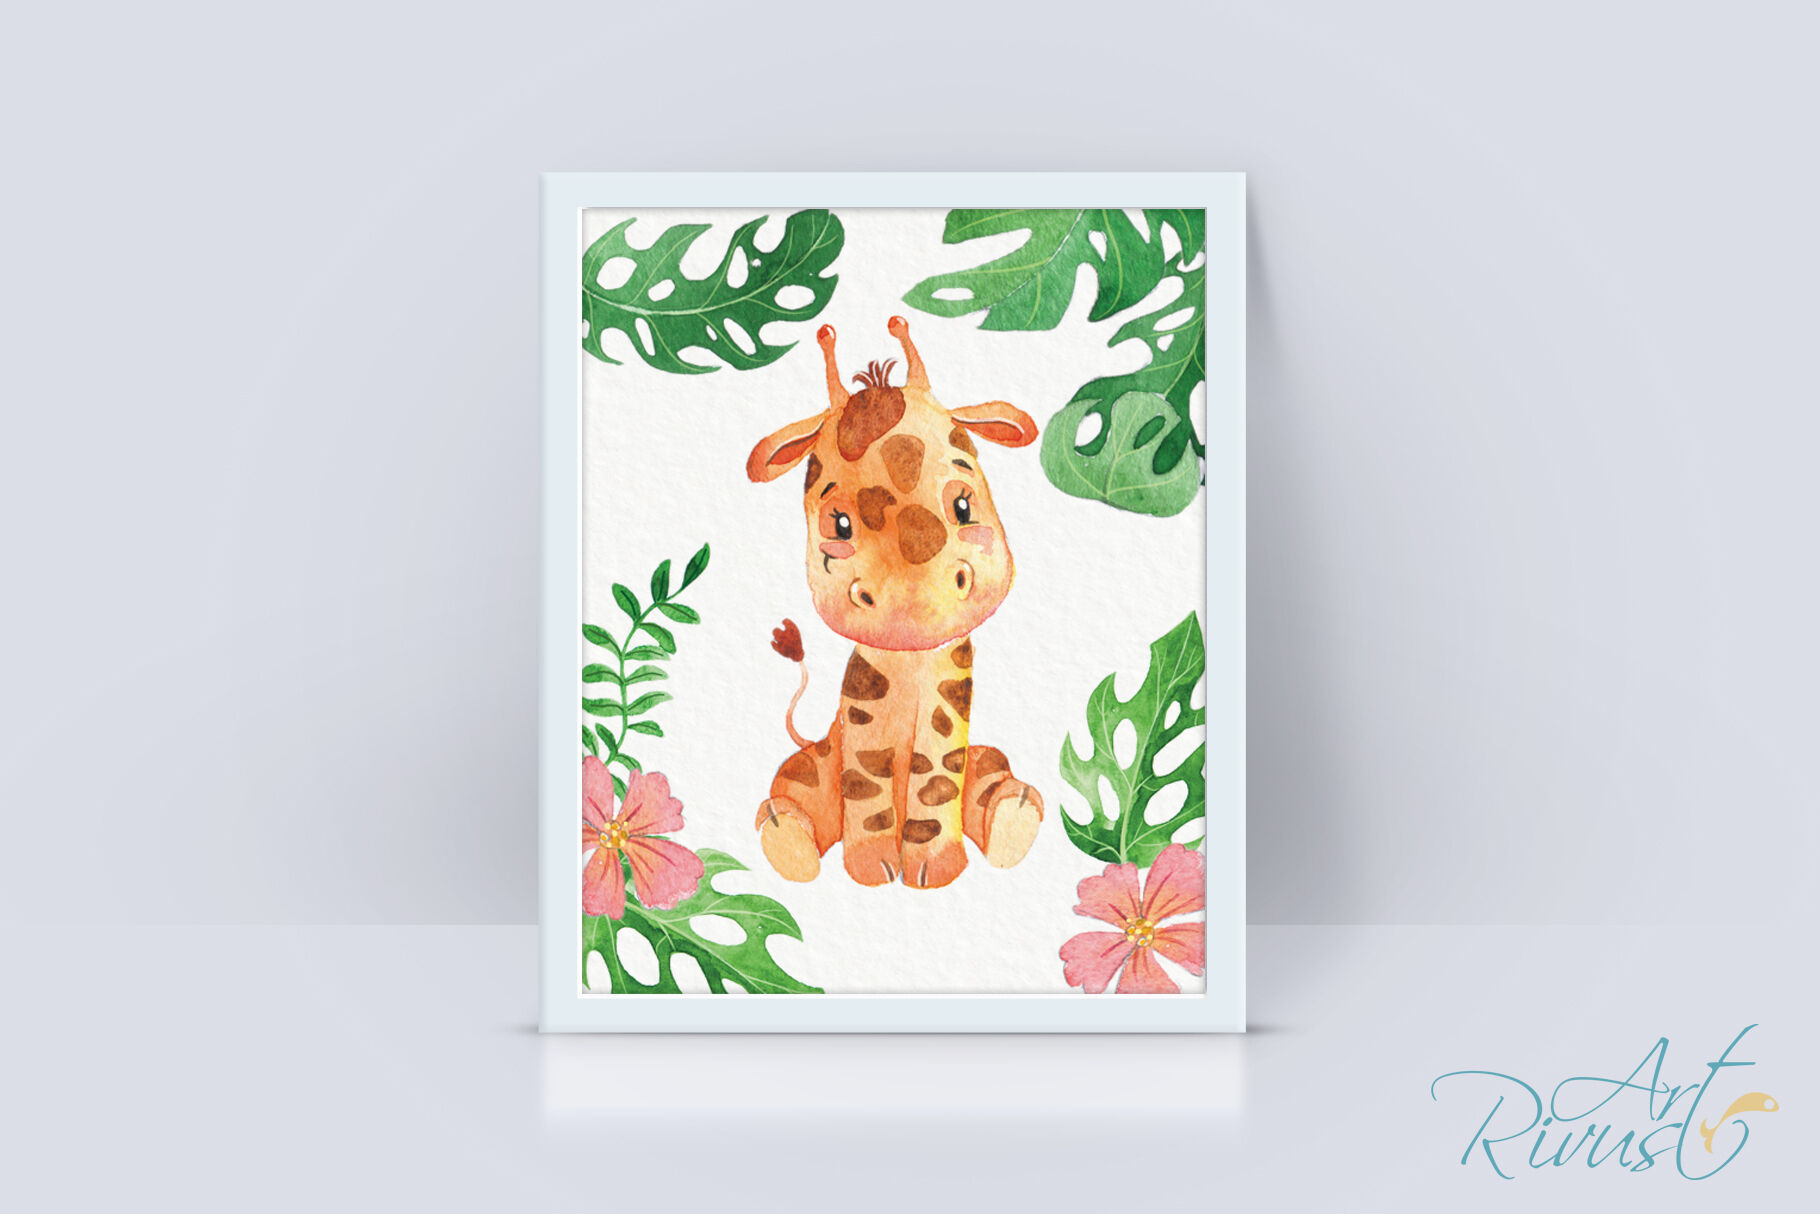 It's just a photo of Printable Safari Animals intended for nursery